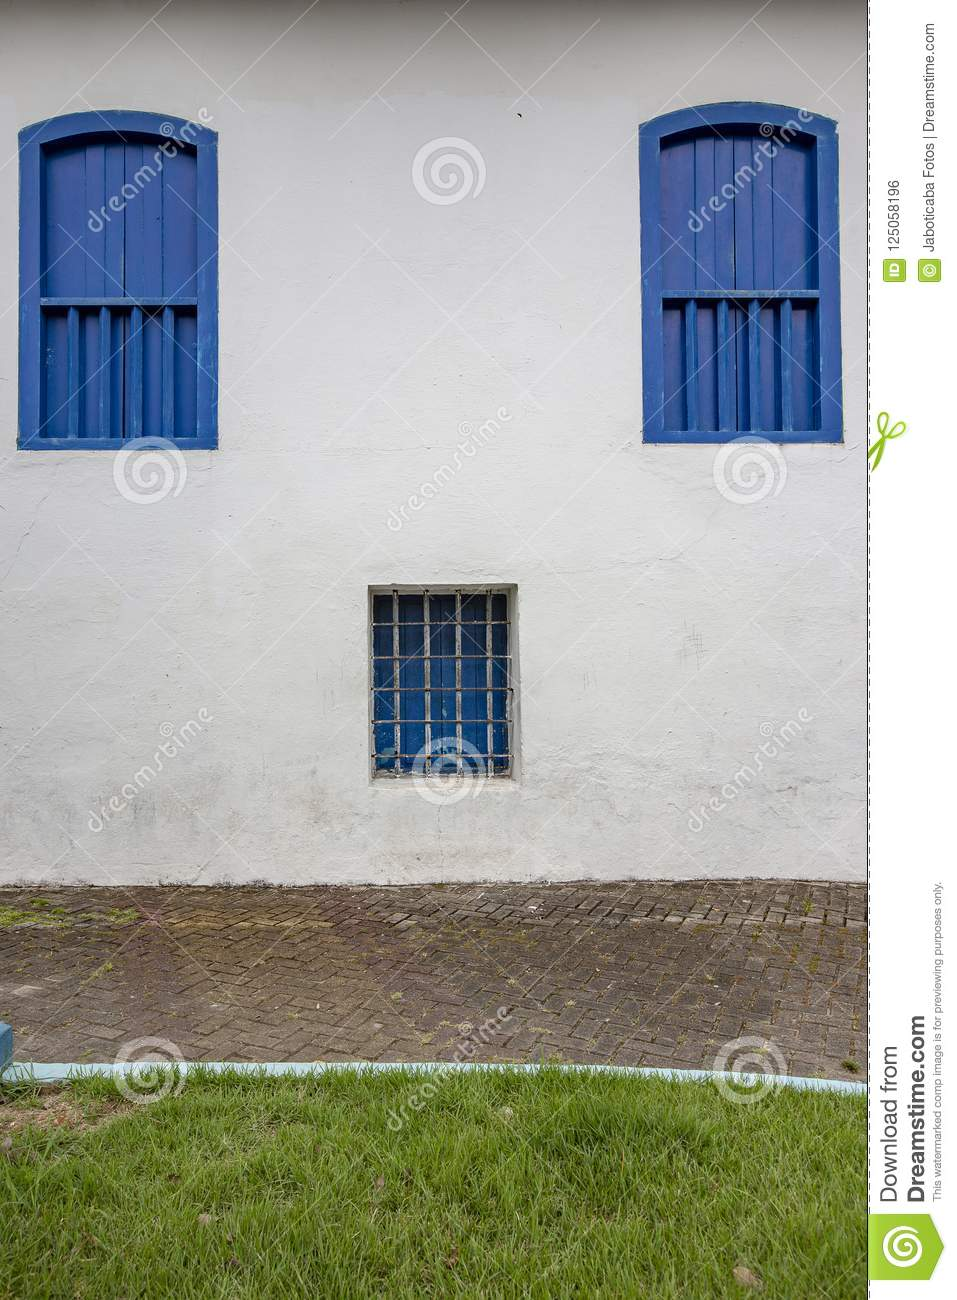 Window Old Jail From The Time Of Colonial Brazil Stock Photo - Image ...